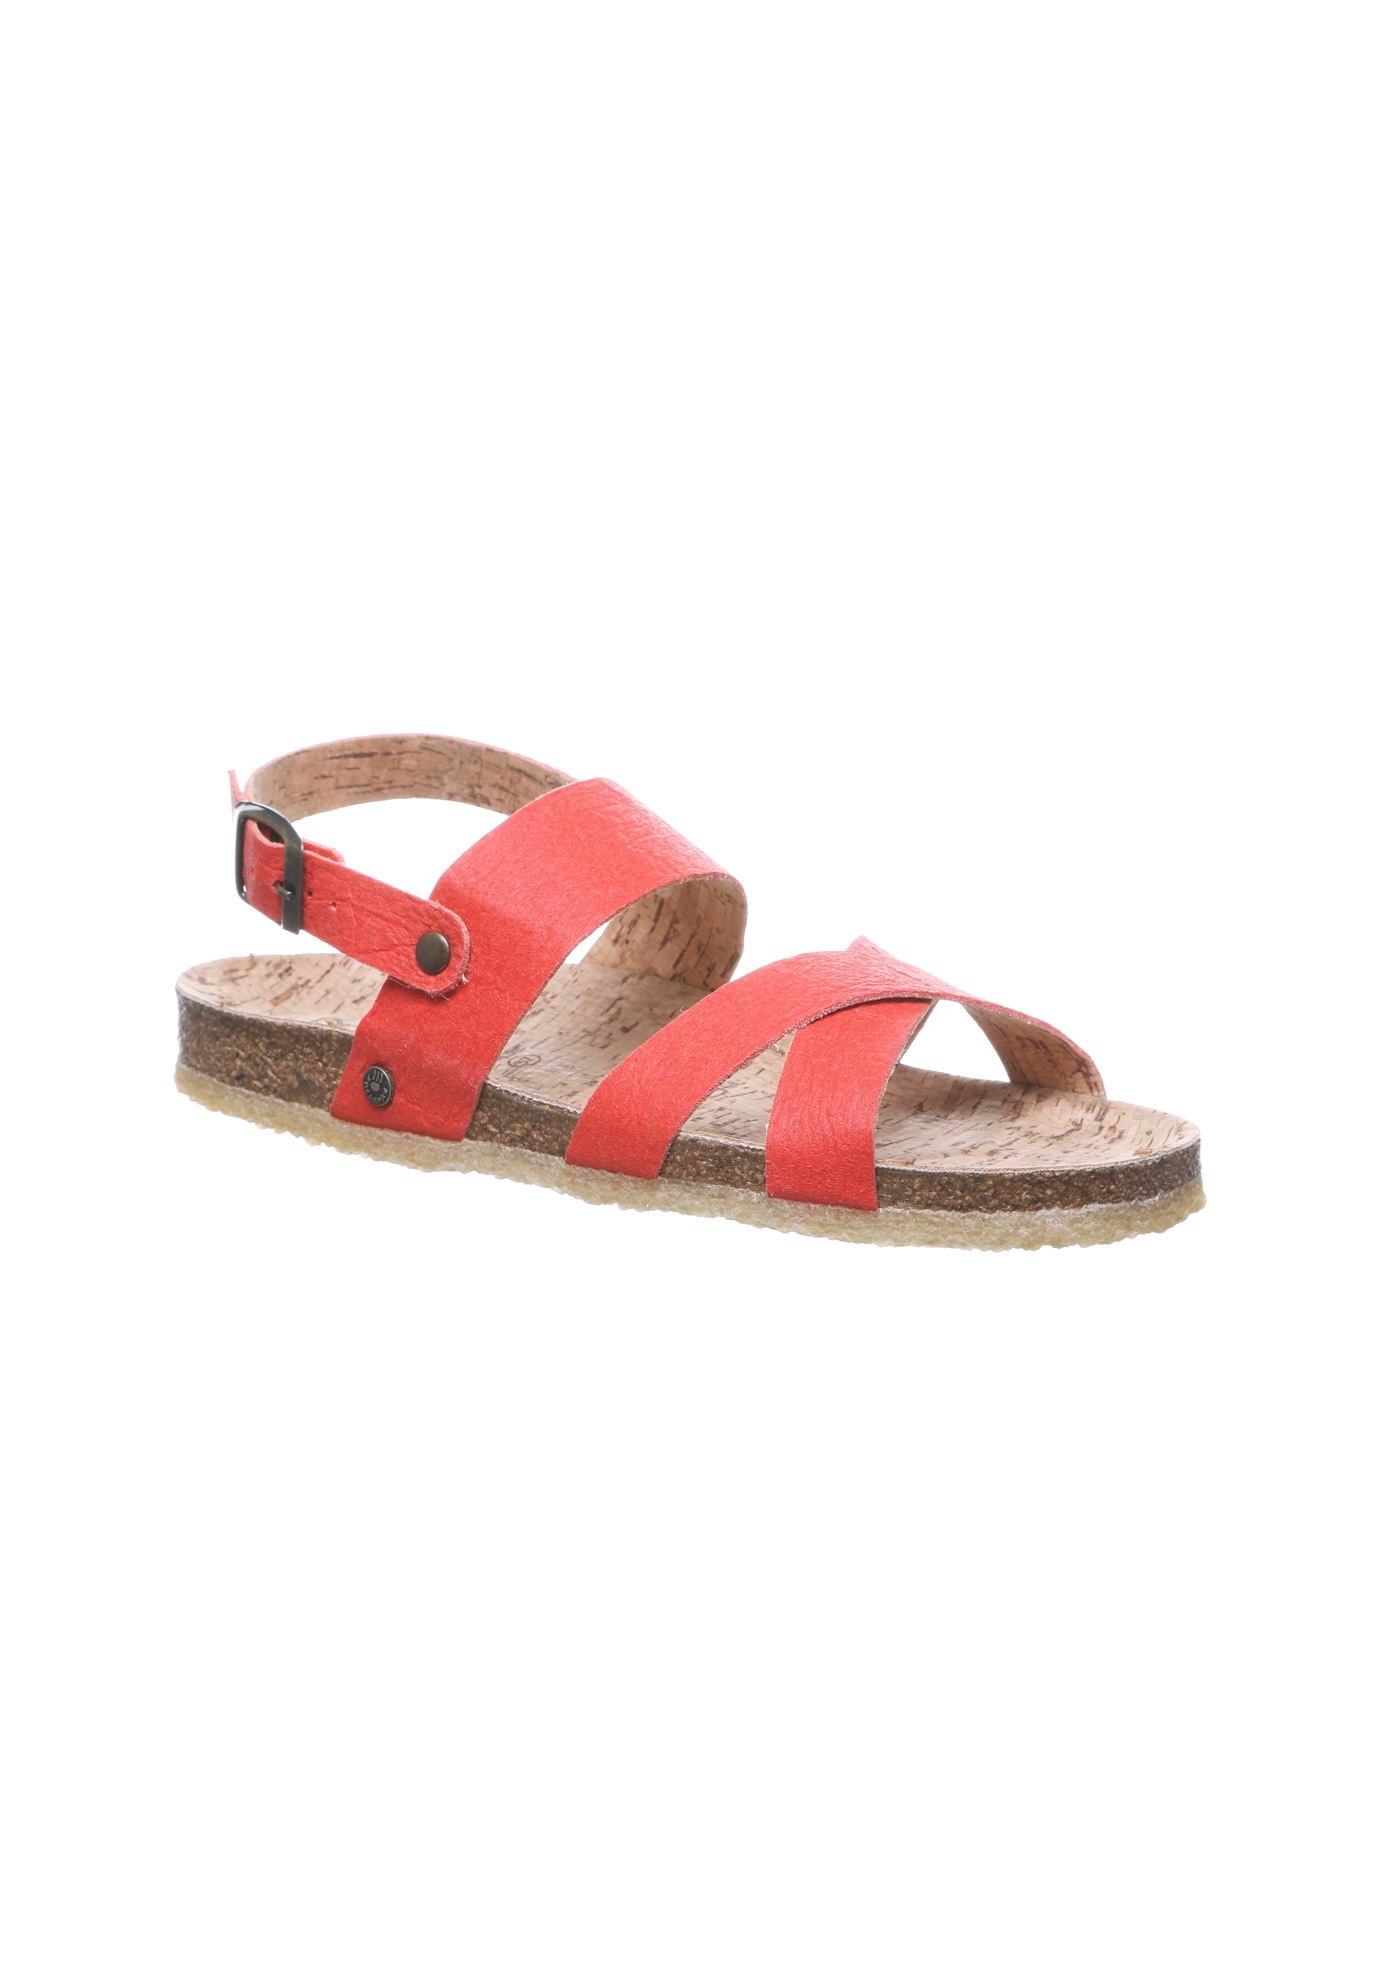 Kala Sandals by Bearpaw,